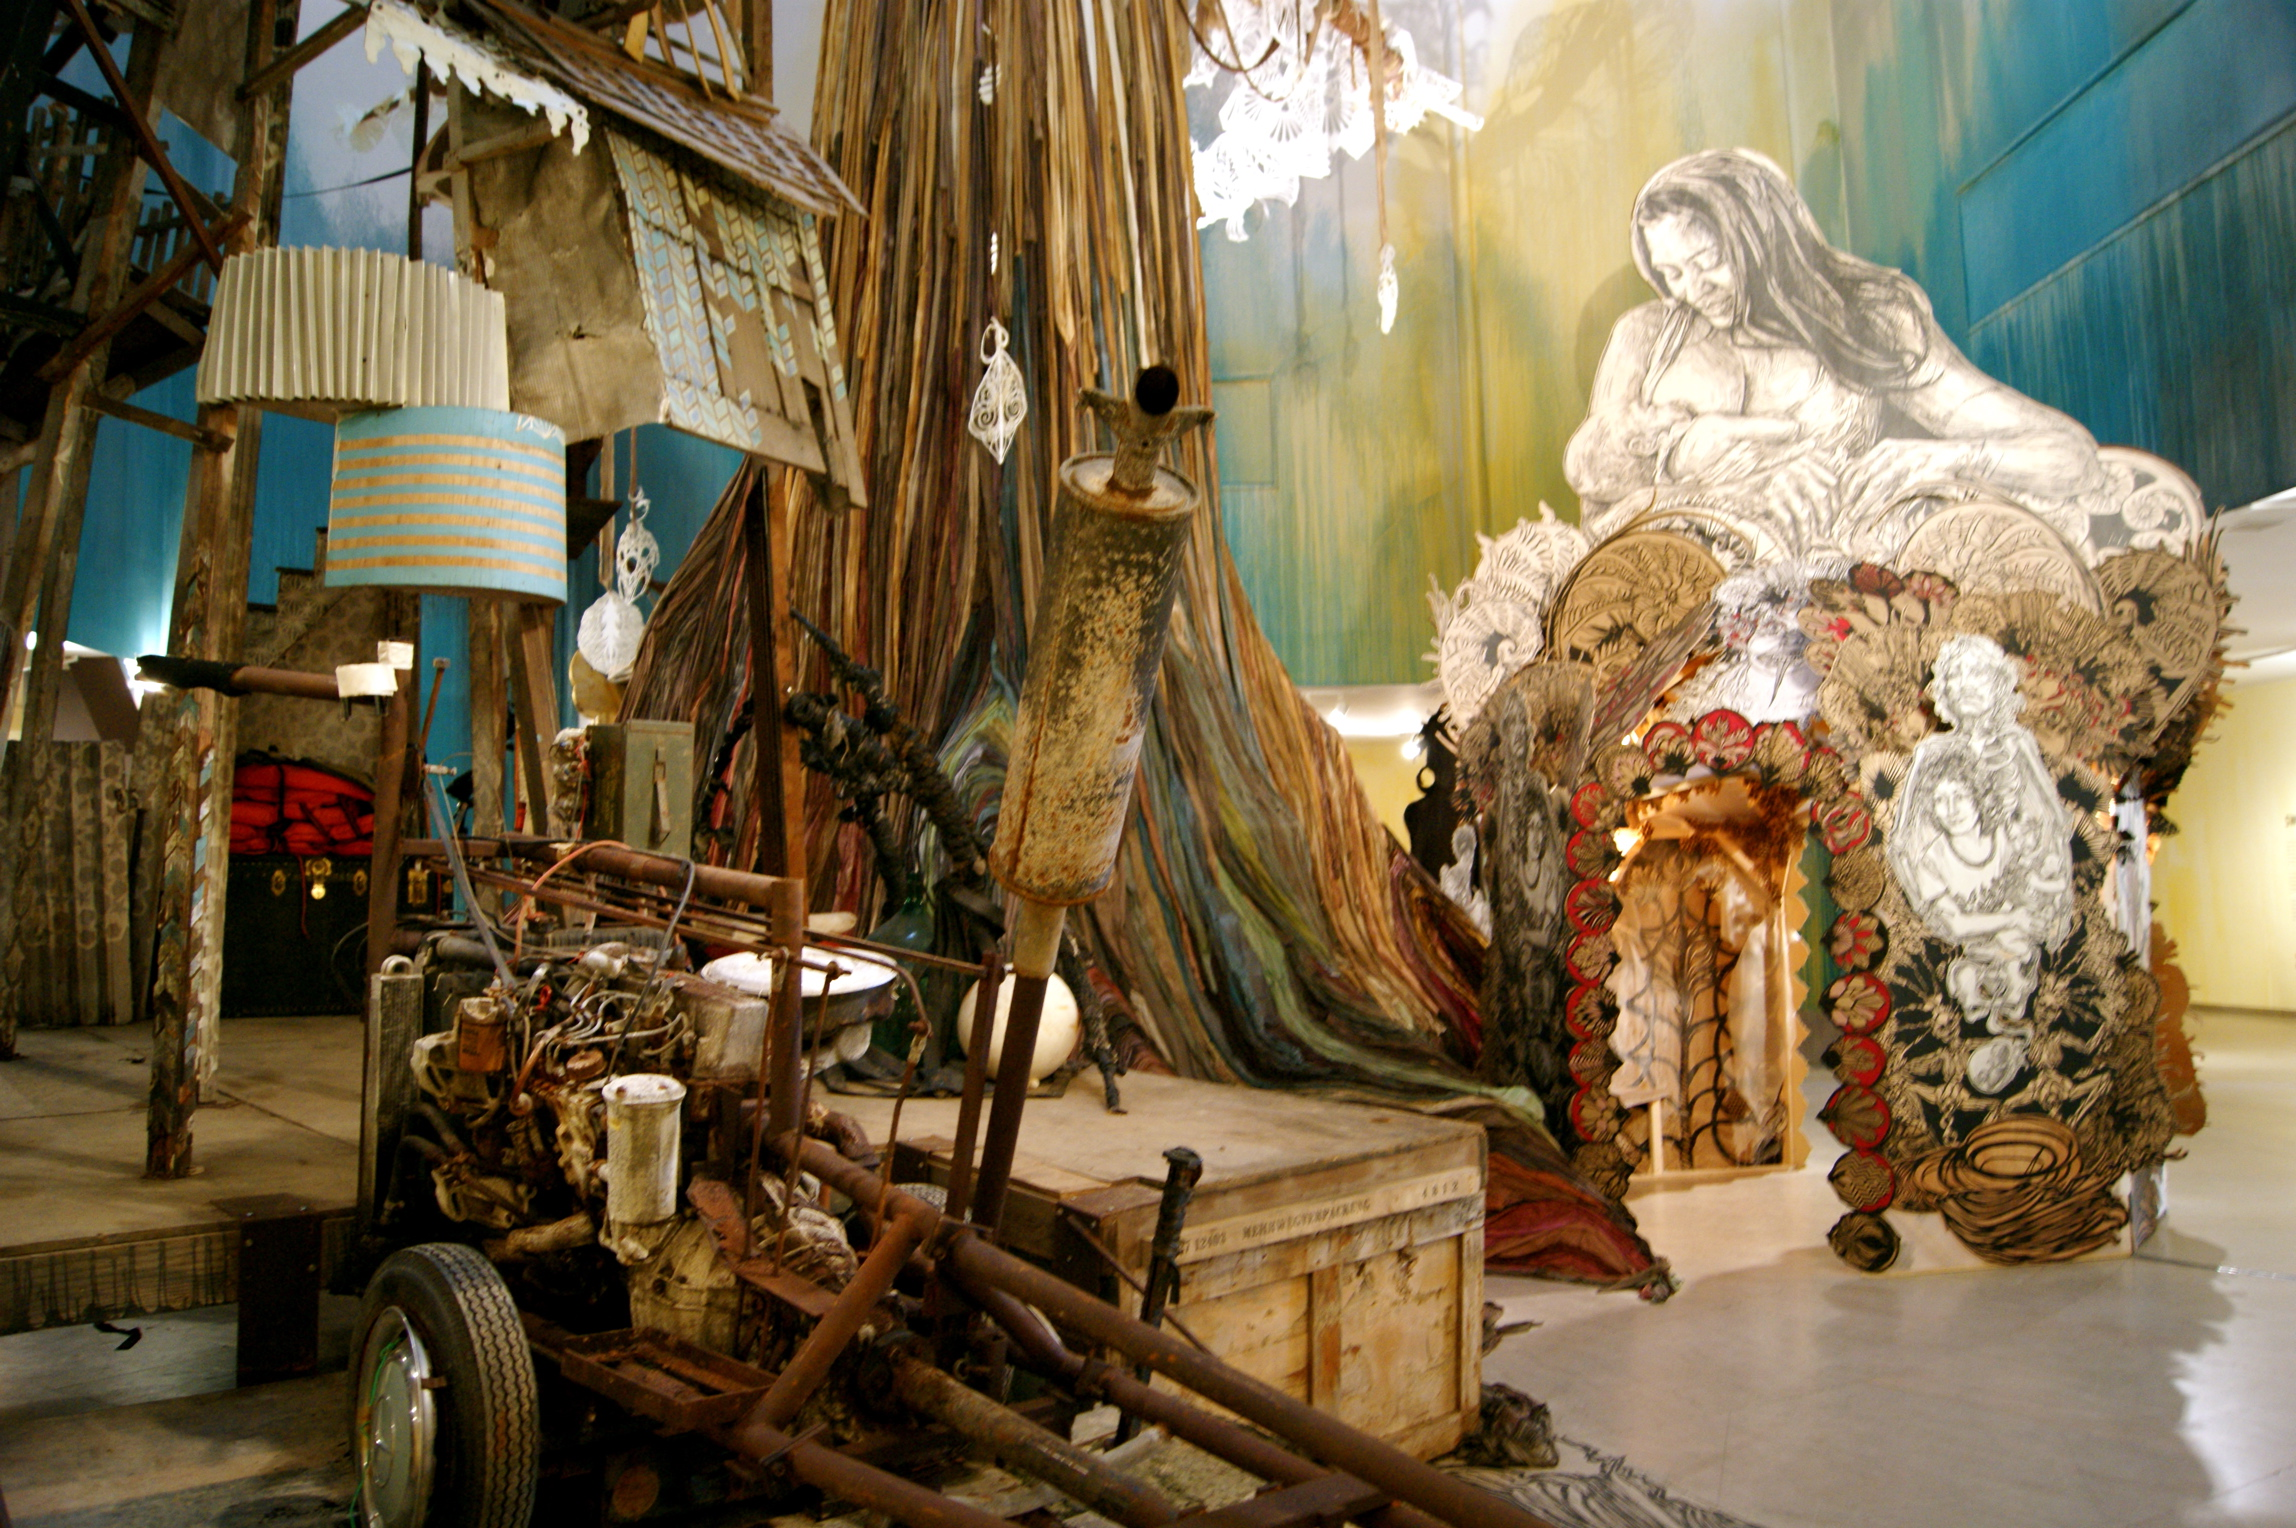 Swoon: Submerged Mortherlands